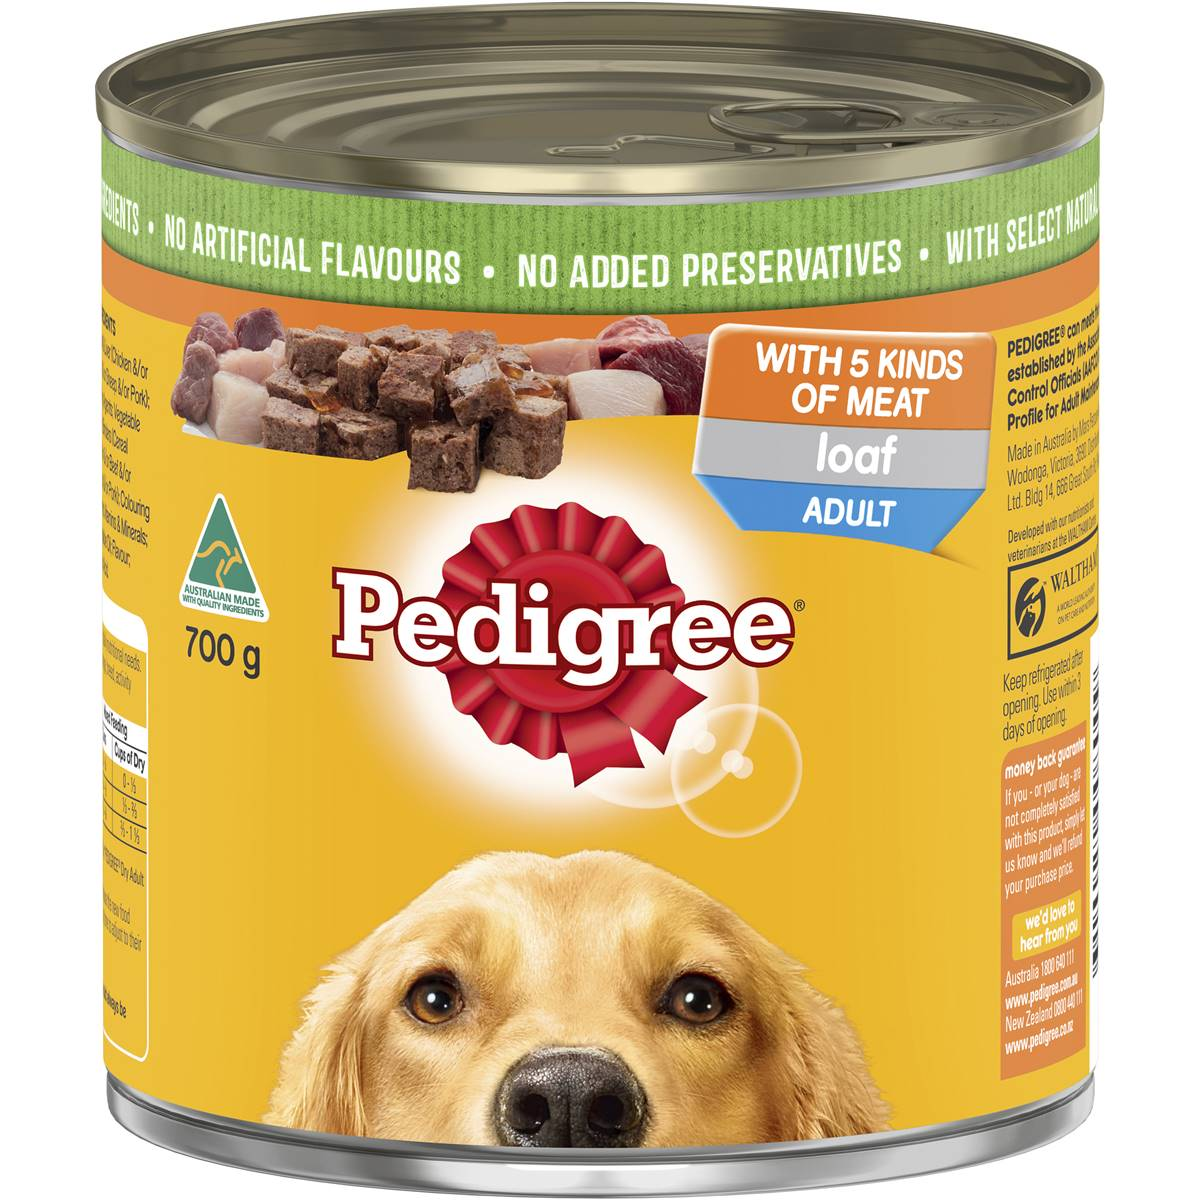 List Of Synonyms And Antonyms Of The Word Pedigree